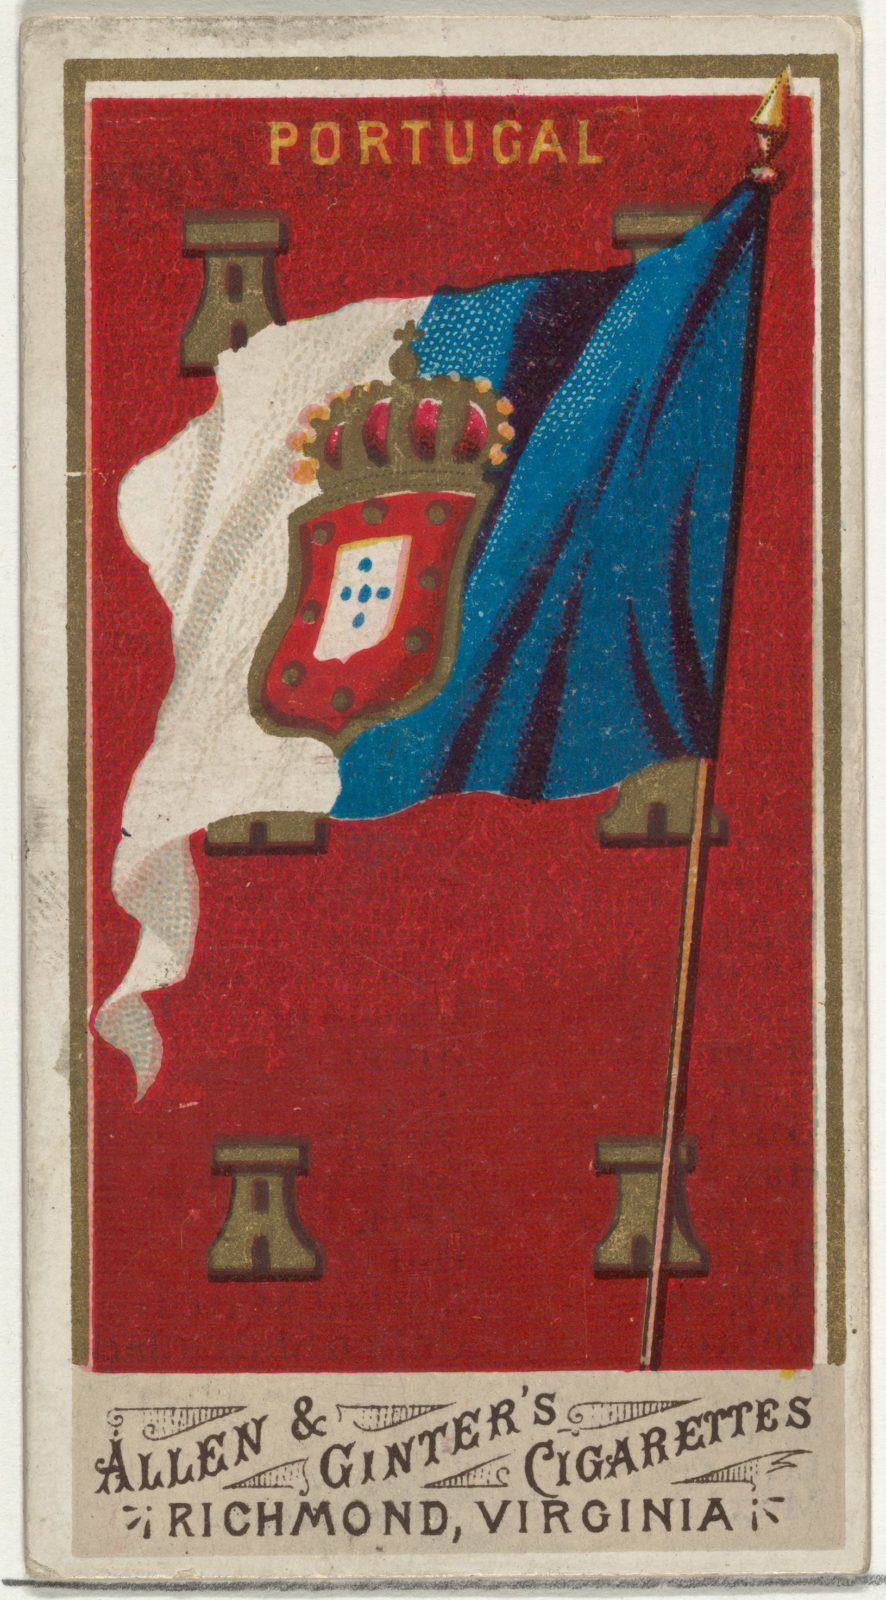 Portugal, from Flags of All Nations, Series 1 (N9) for Allen & Ginter Cigarettes Brands